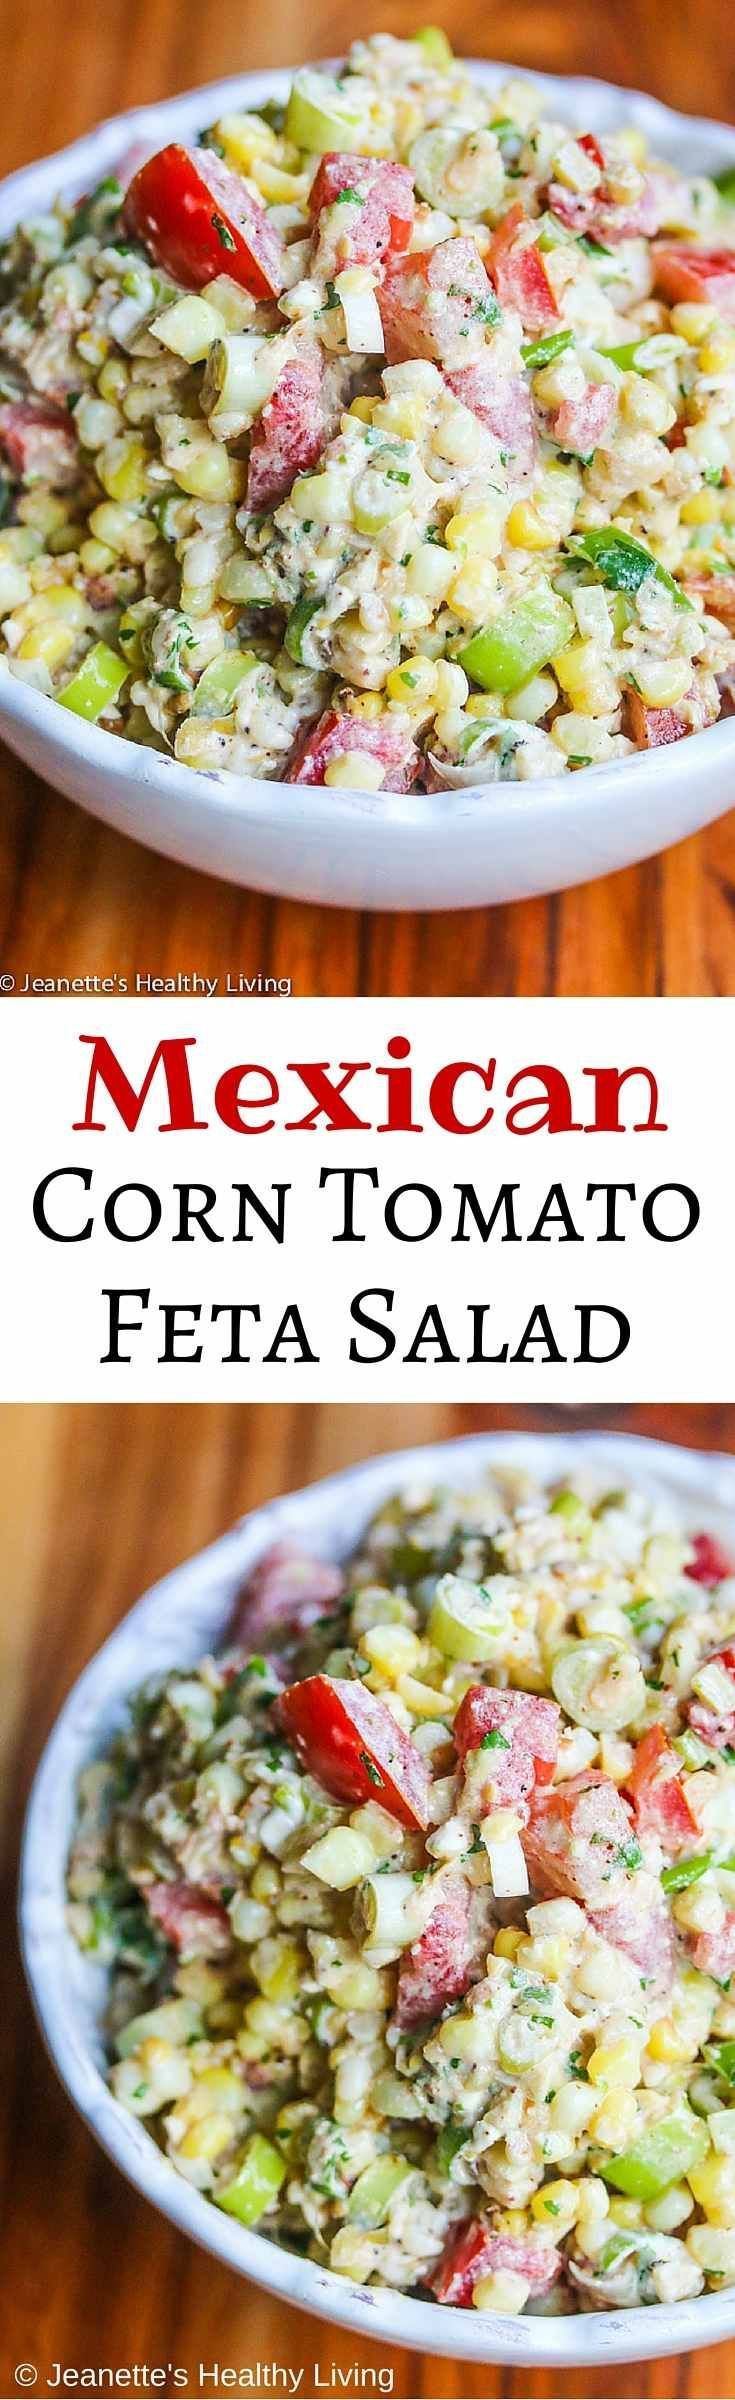 Mexican Corn Tomato Feta Salad - you'll find all the flavors of Mexican street corn are in this creamy summer salad ~ jeanetteshealthyl... #fcpinpartners